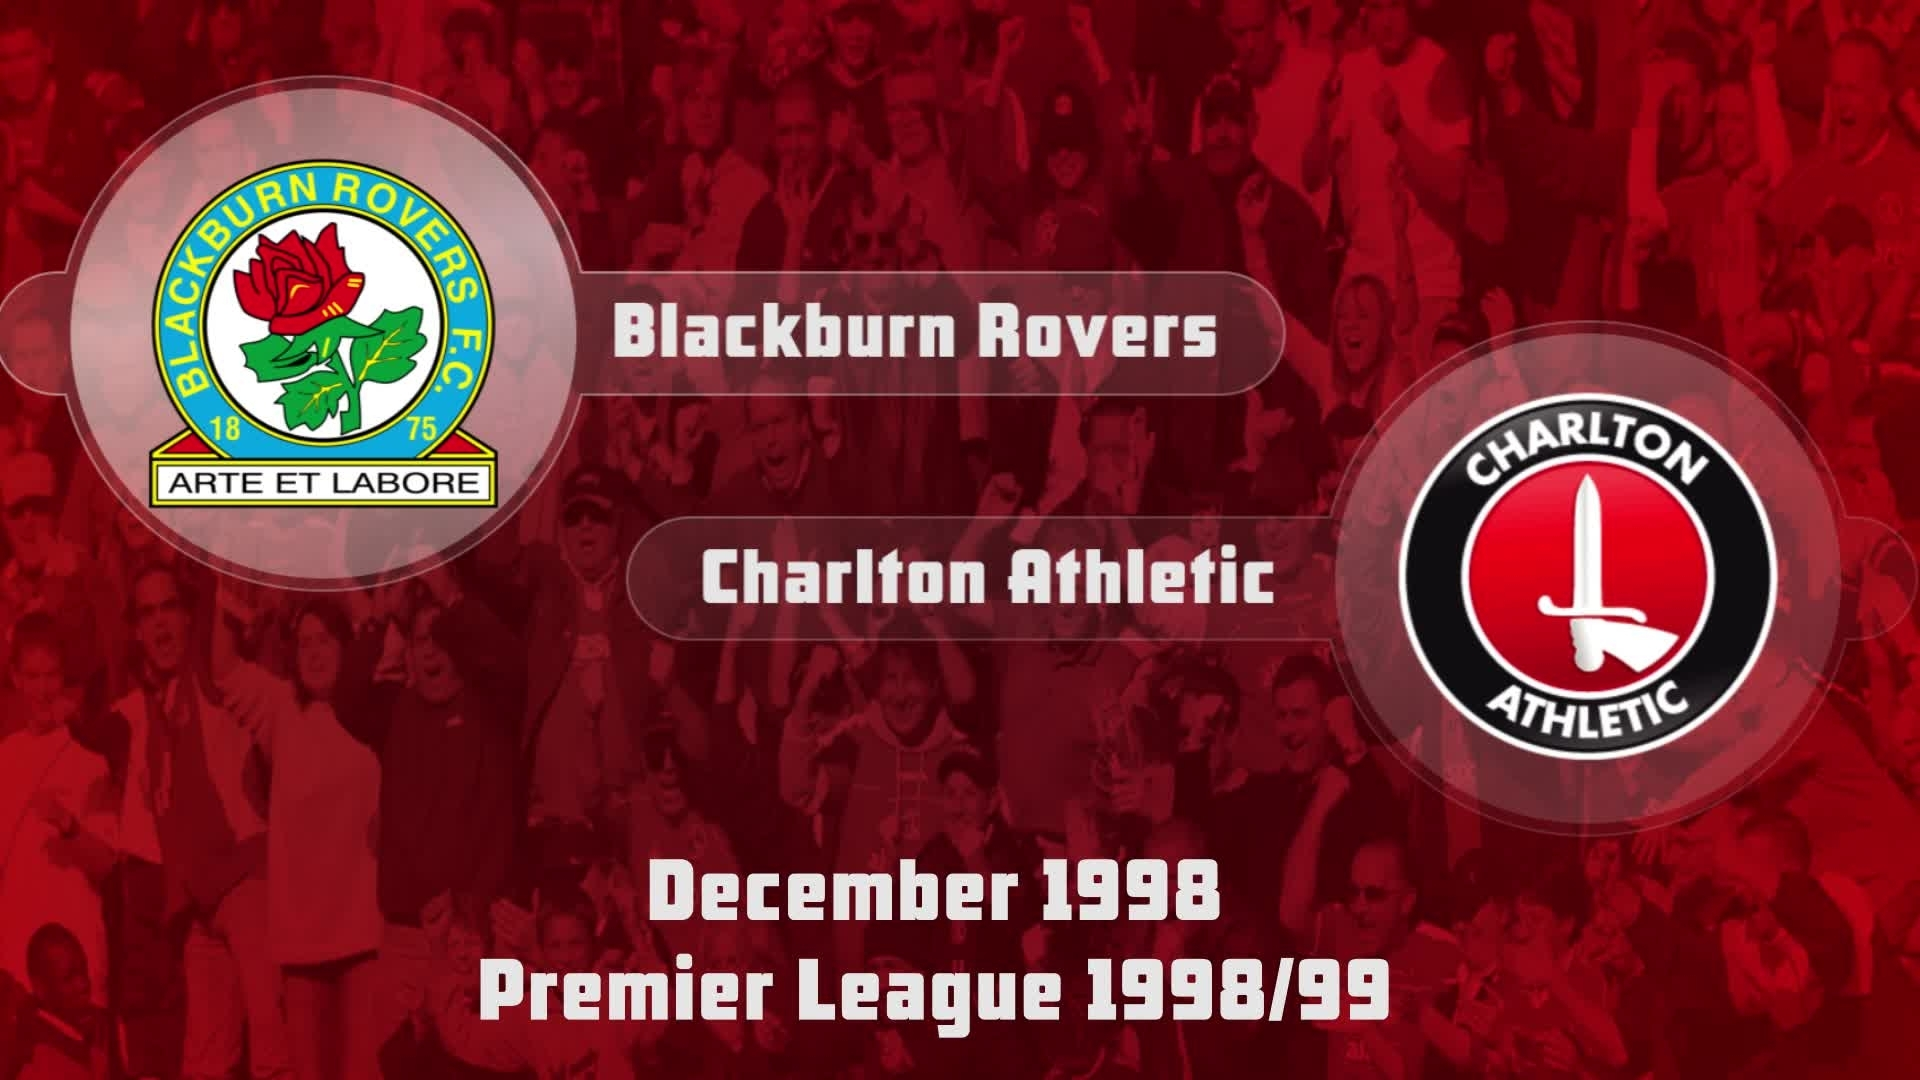 19 HIGHLIGHTS | Blackburn Rovers 1 Charlton 0 (Dec 1998)